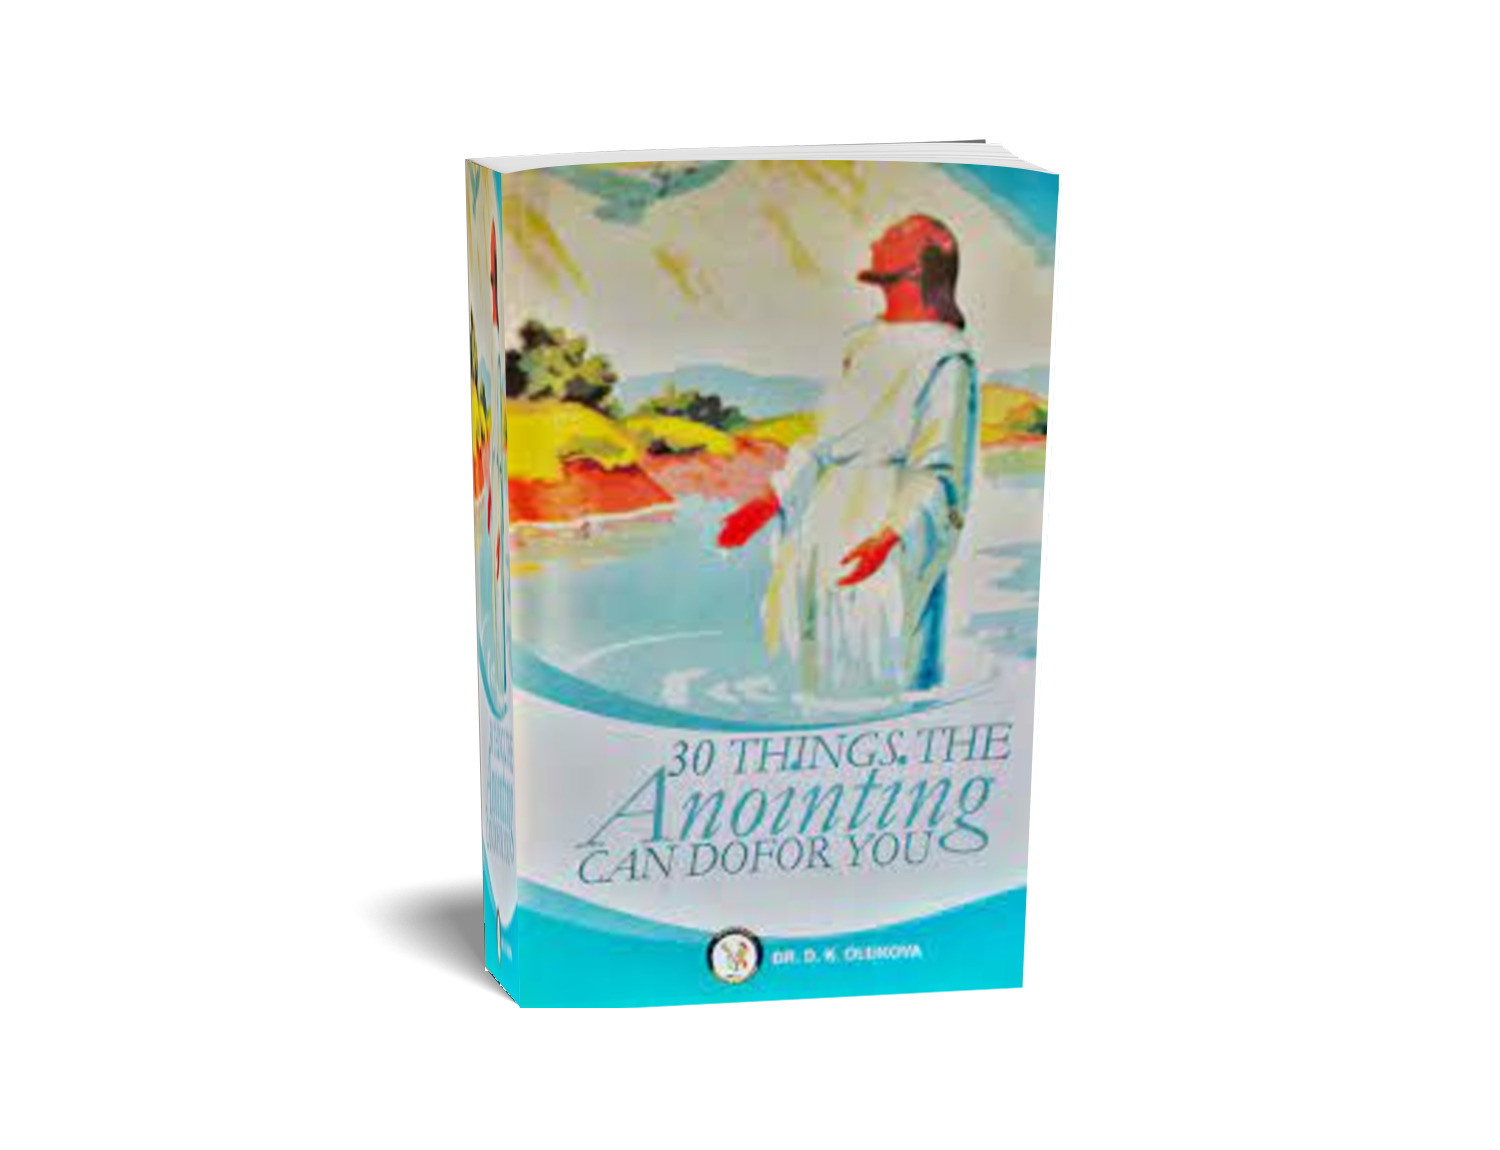 30 THINGS THE ANOINTING CAN DO FOR YOU | DK OLUKOYA BOOKS